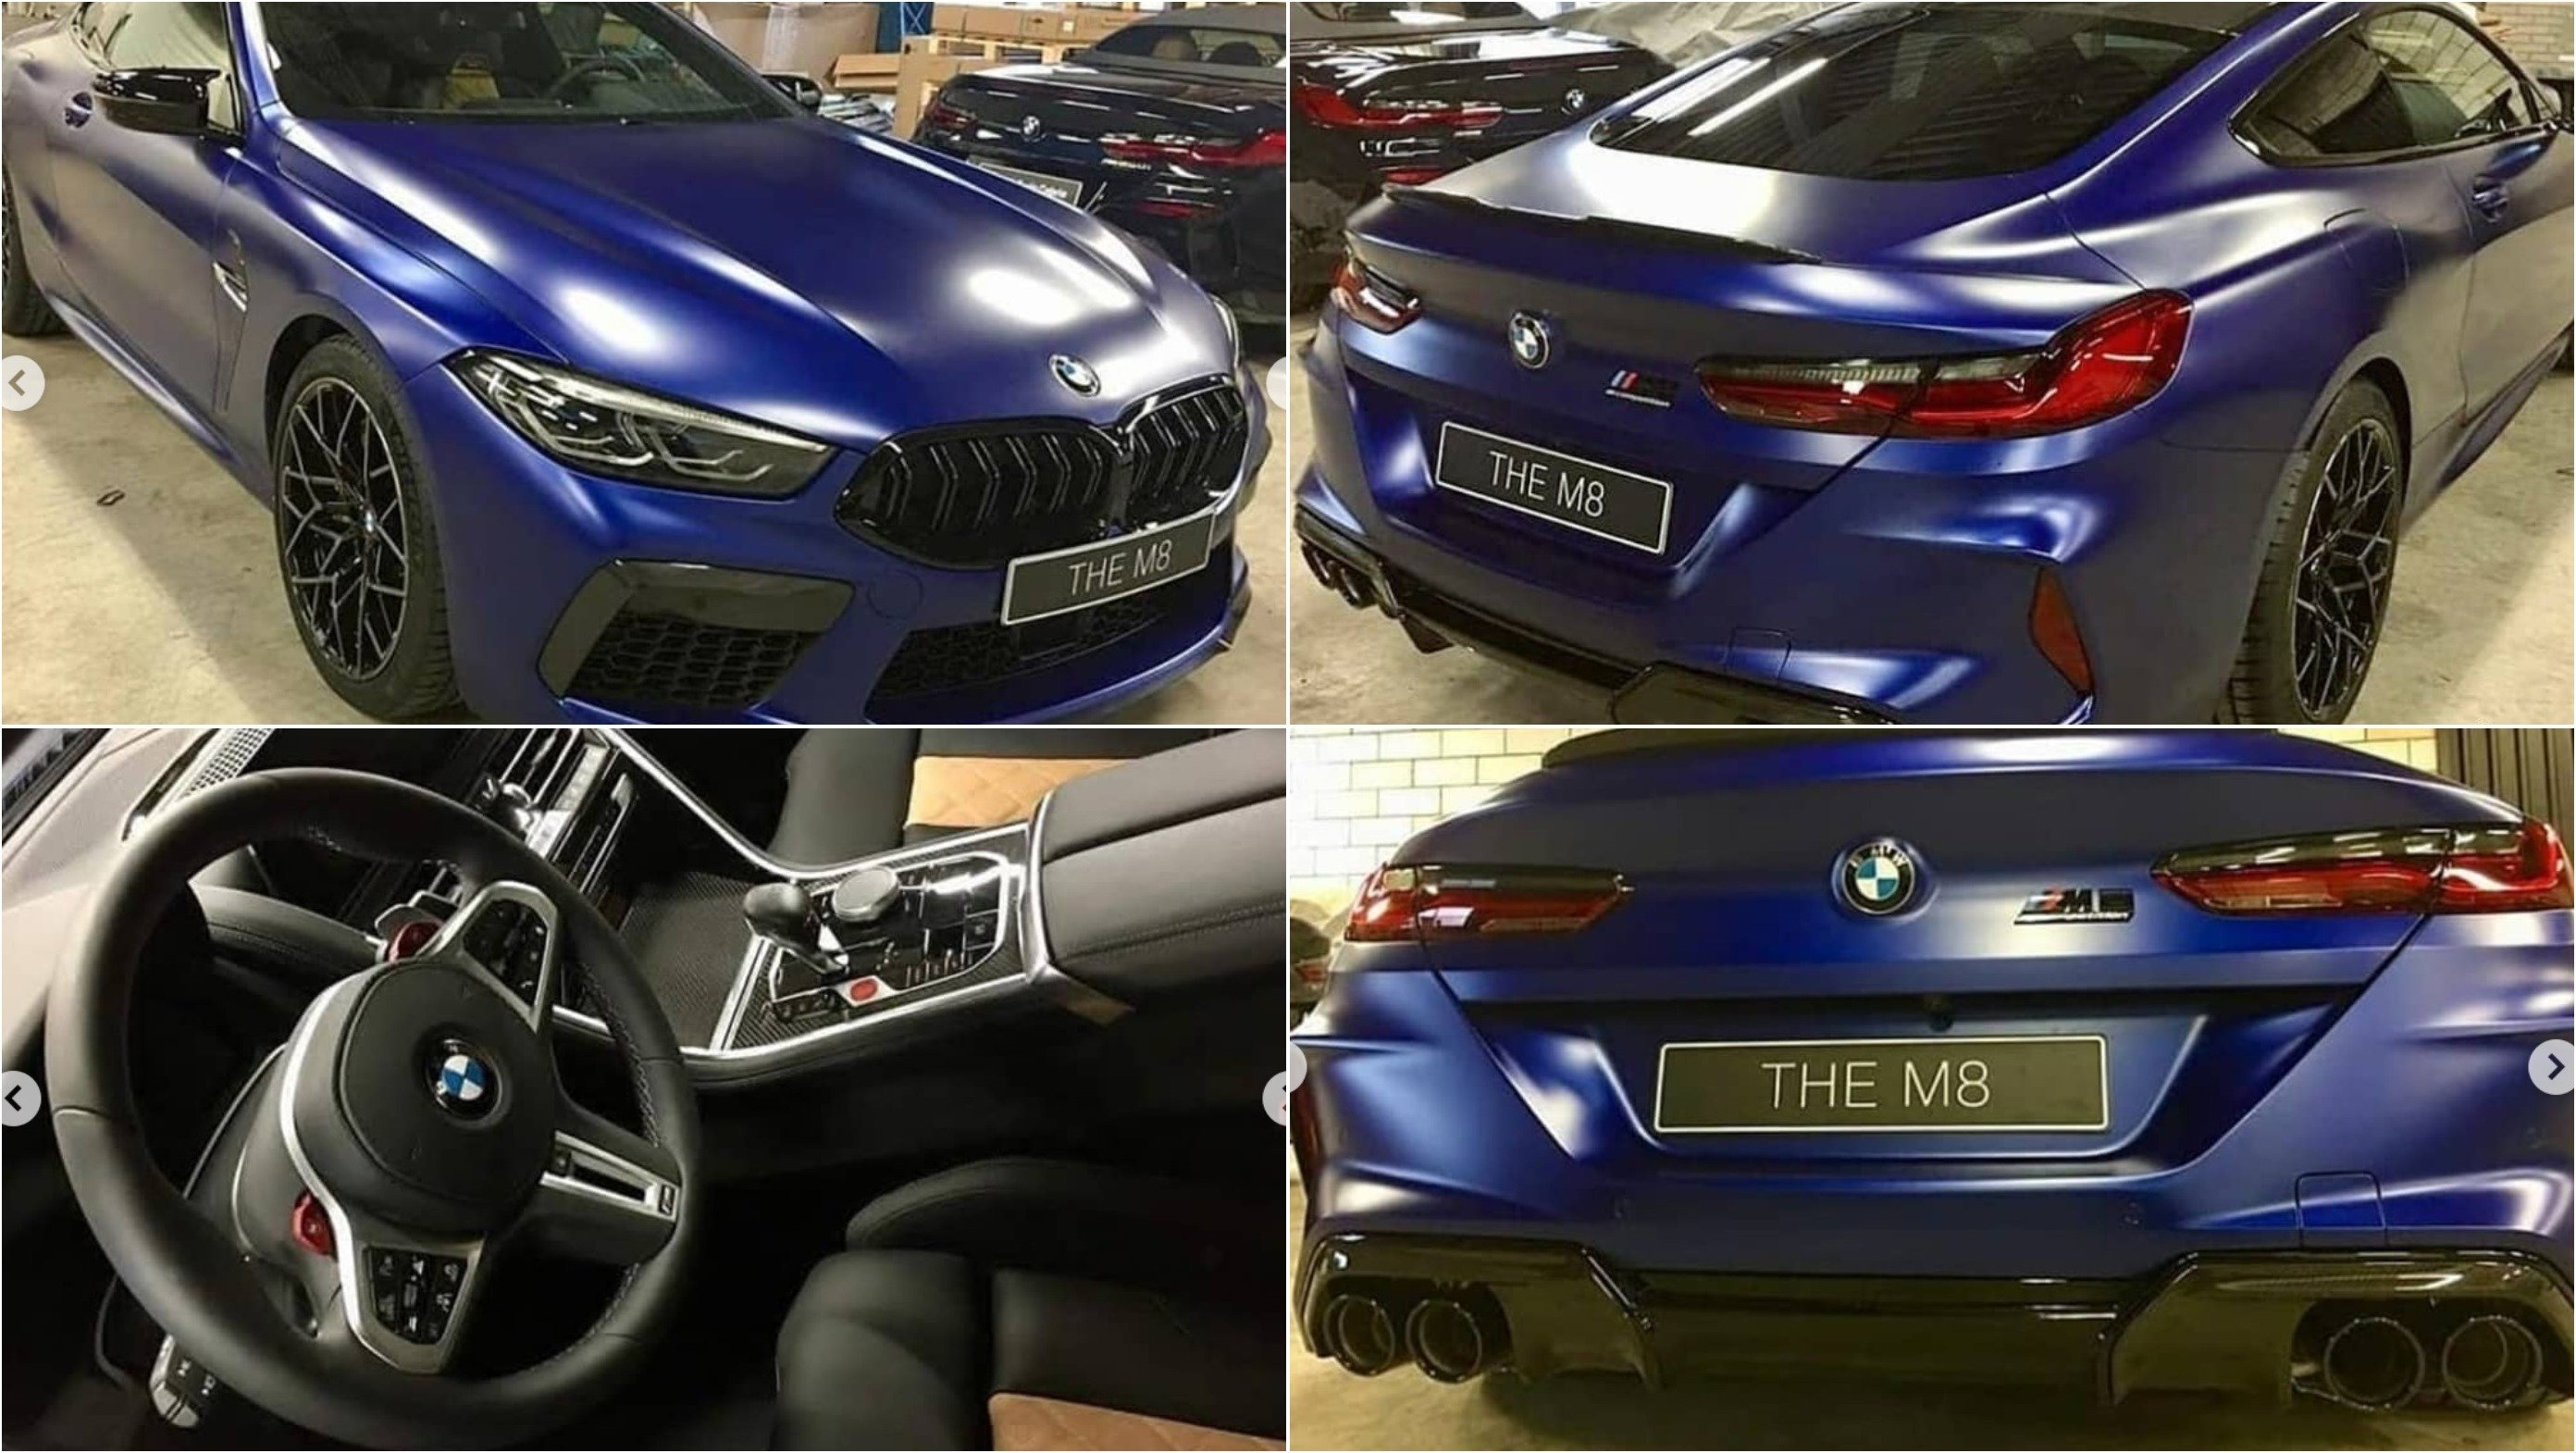 5f179ee5ec4 The BMW 8 Series returned in 2018 after almost 20 years. Developed to  replace the 6 Series